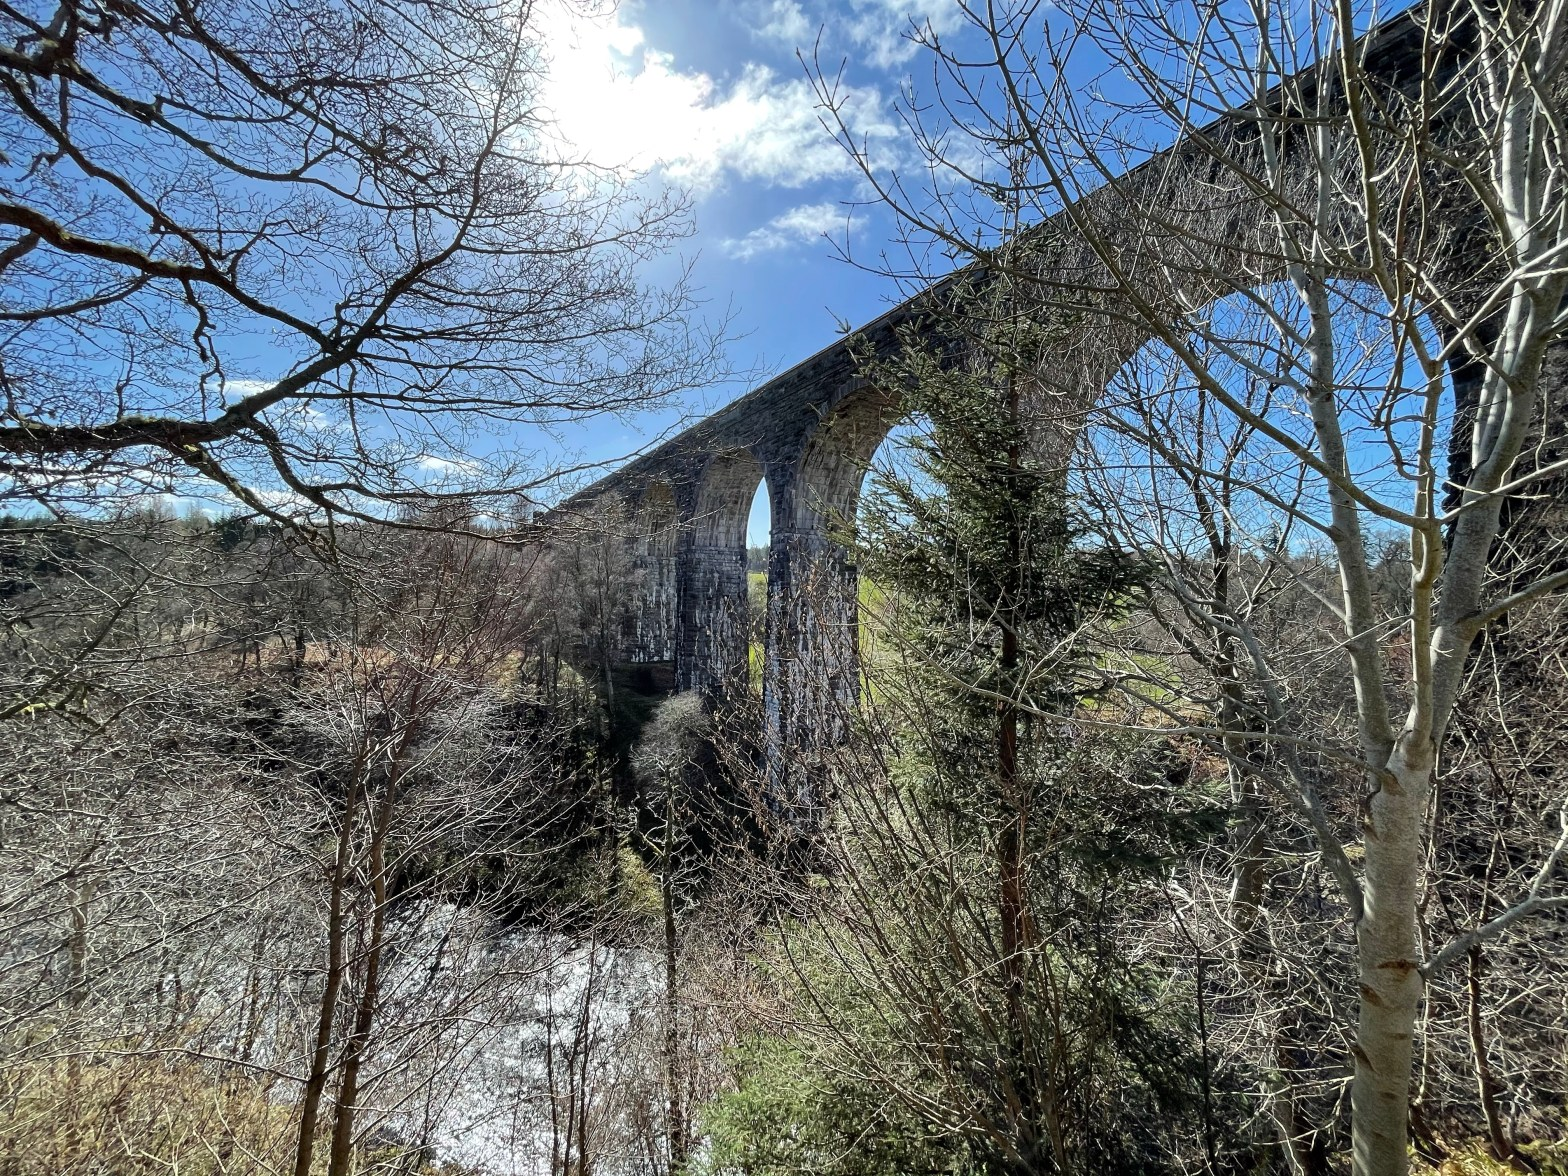 Divie viaduct from the side